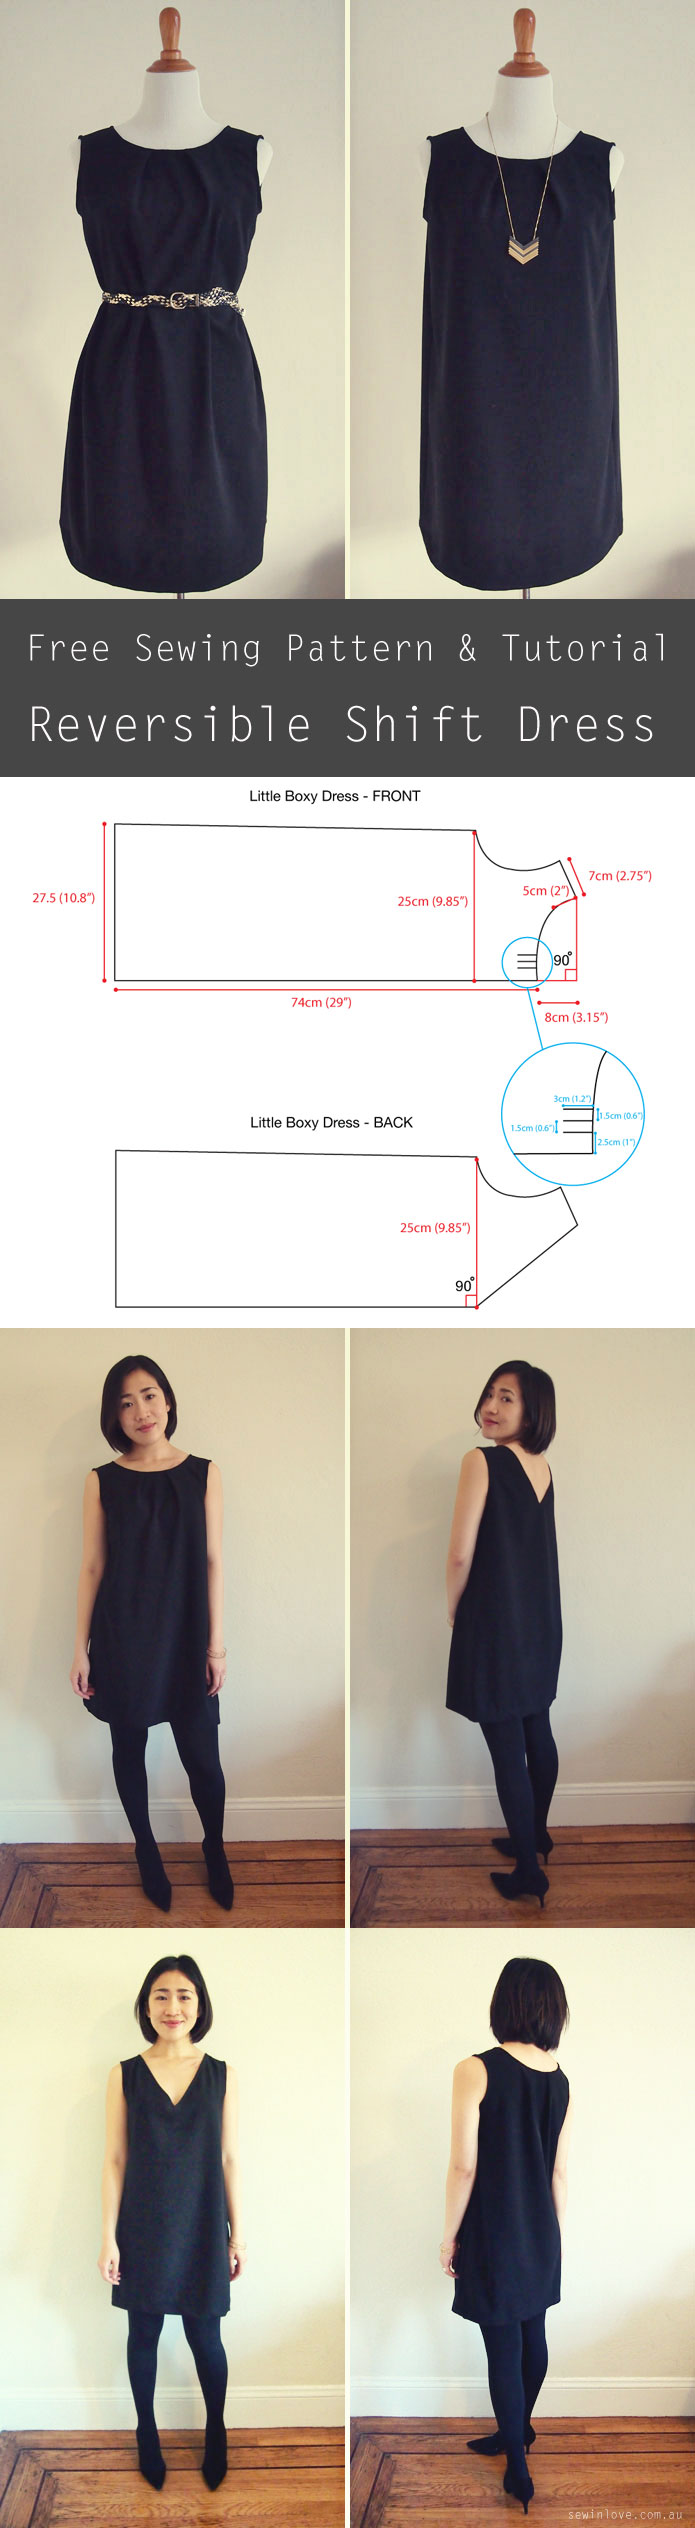 Free-couture-pattern-LBD-Pinterest